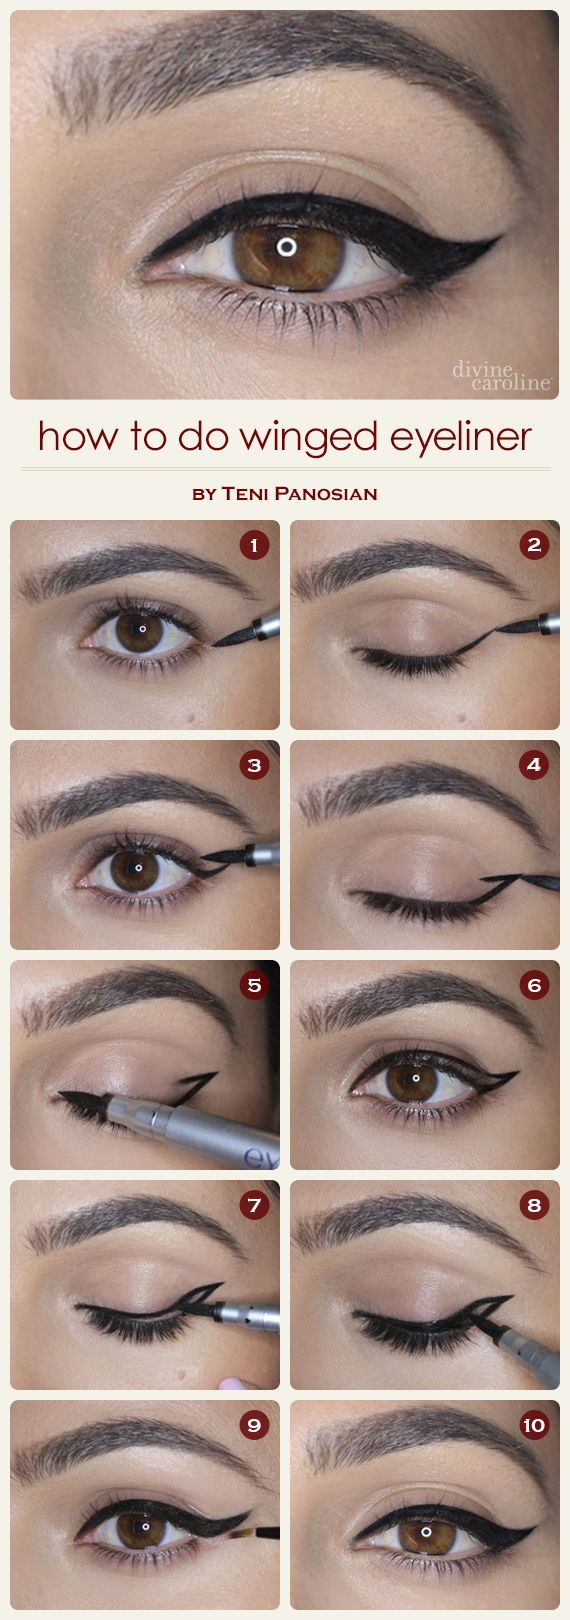 241294492509299733 How to Do Winged Eyeliner | Divine Caroline     eyeliner